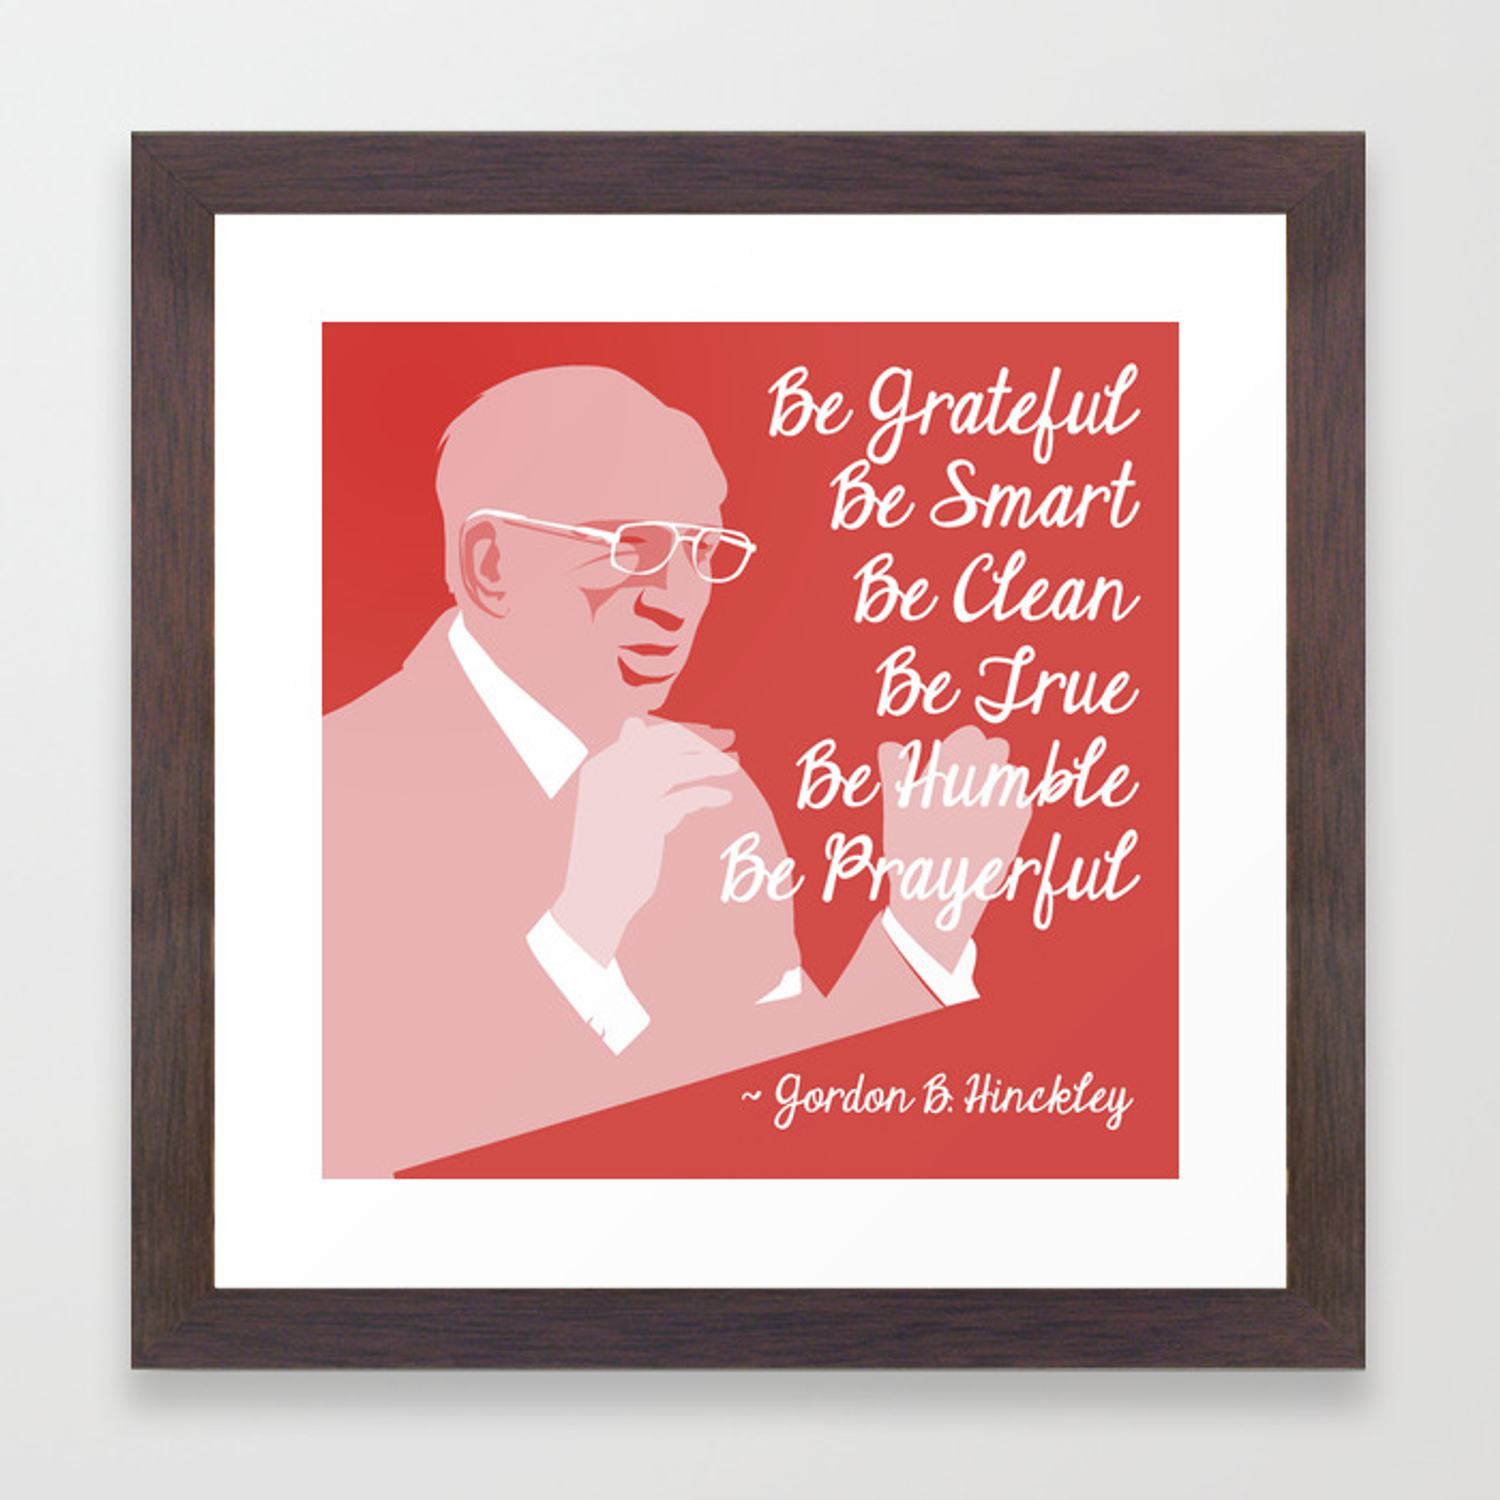 6 B S Gordon B Hinckley Quote Framed Art Print By Themisess Society6